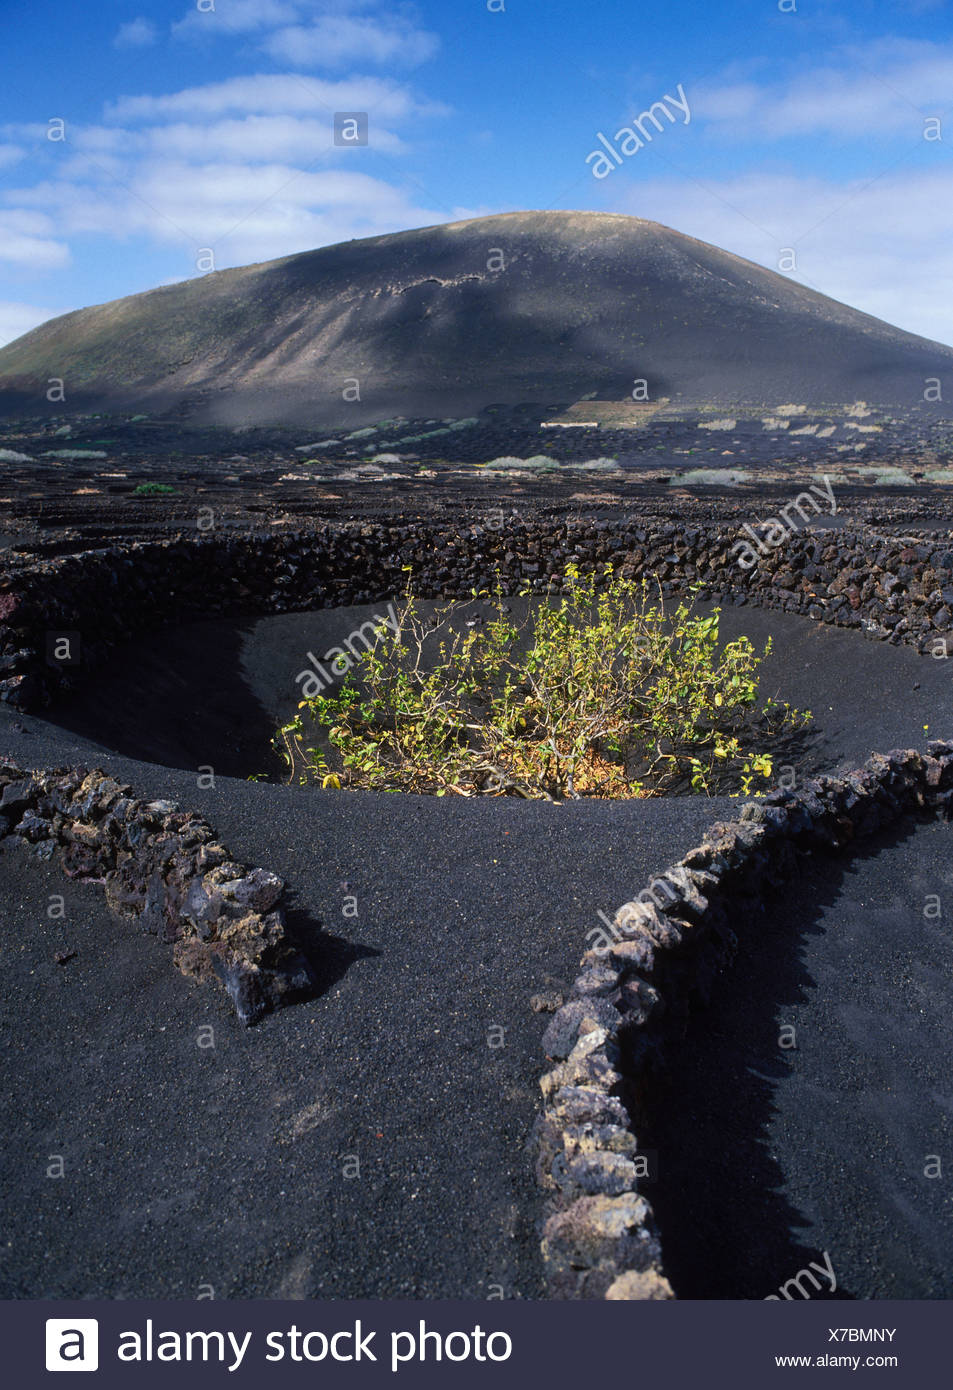 Dryland agriculture on lava, volcanic landscape at La Geria, Lanzarote, Canary Islands, Spain, Europe Stock Photo